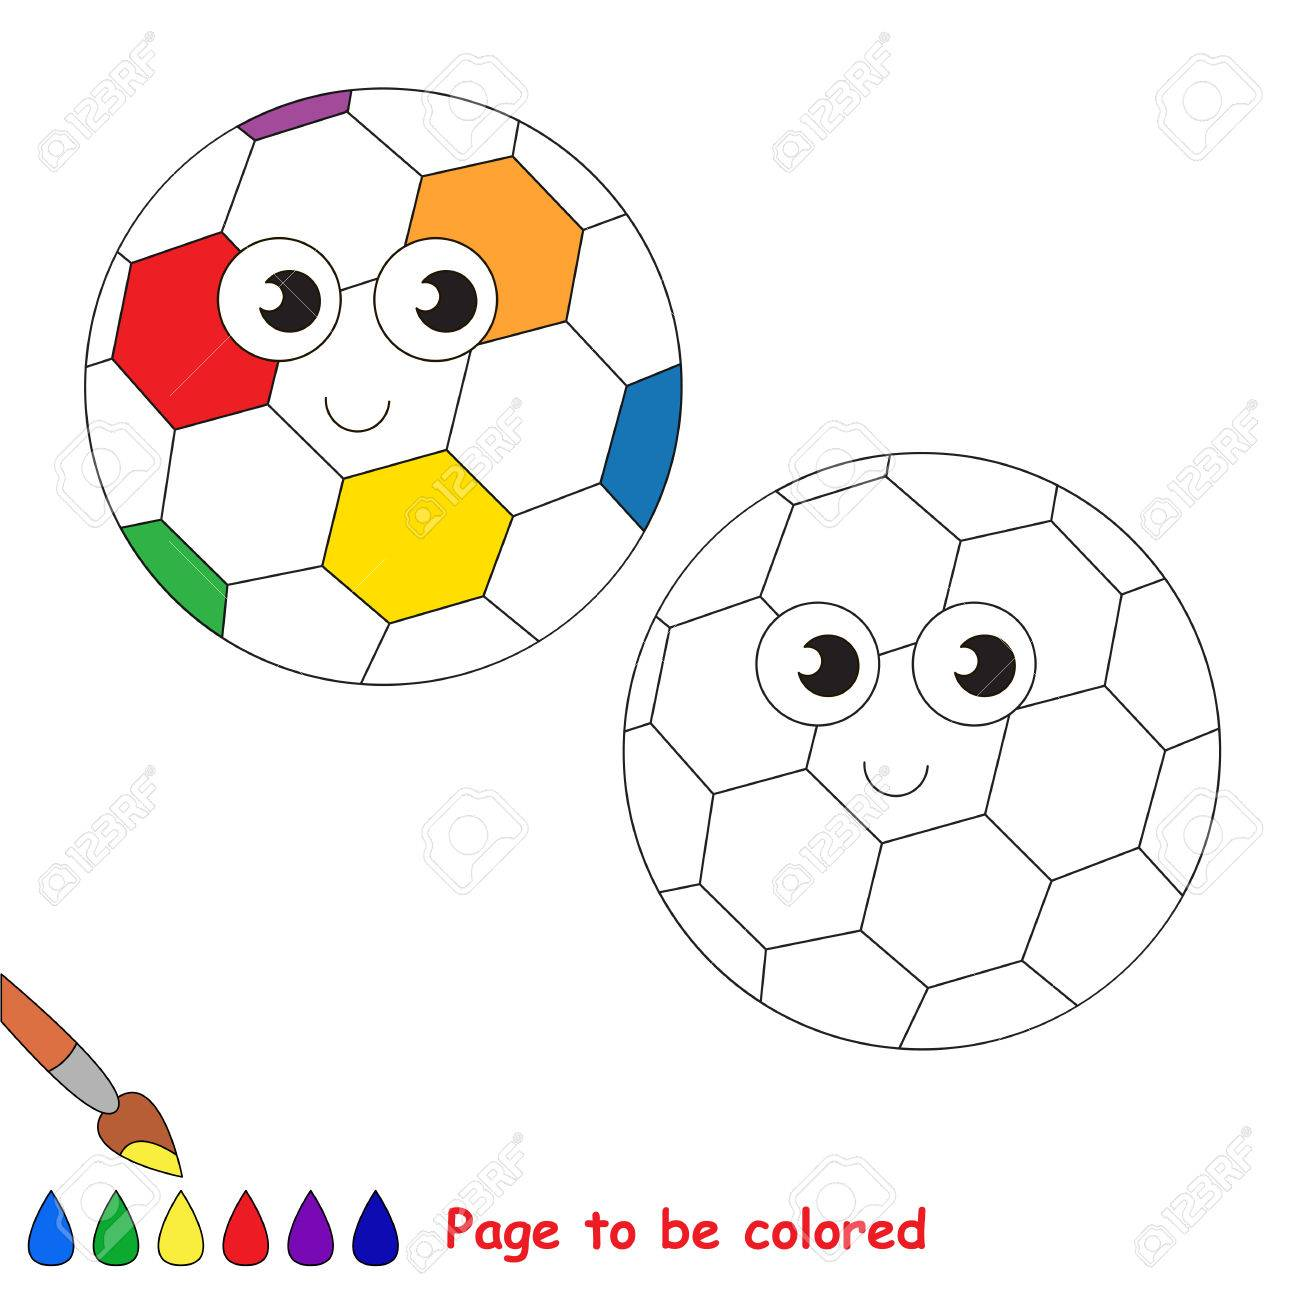 Rainbow Football Ball To Be Colored, The Coloring Book To Educate ...